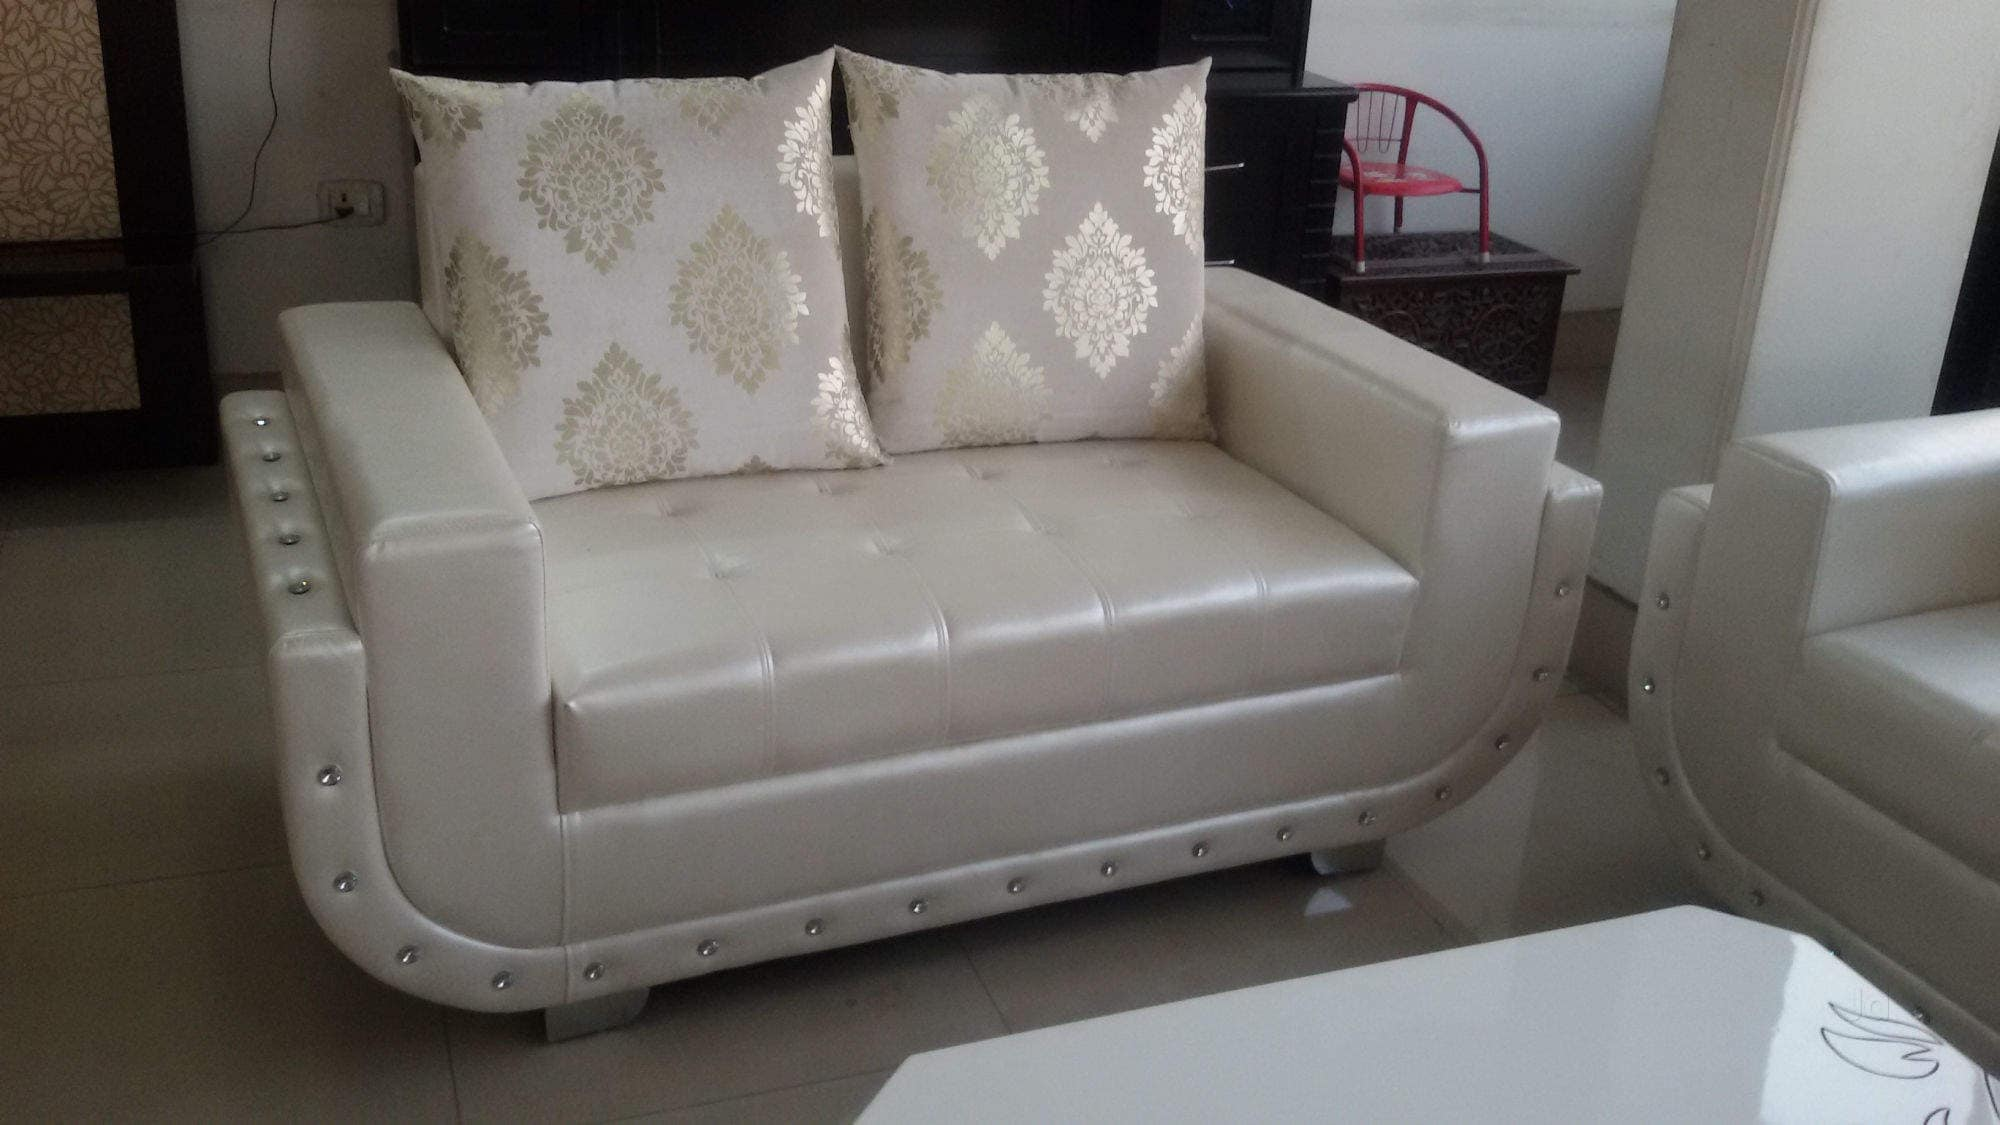 Bettsofa Interio Ch Top 100 Sofa Dealers In Moti Nagar Best Furniture Sofa Dealers